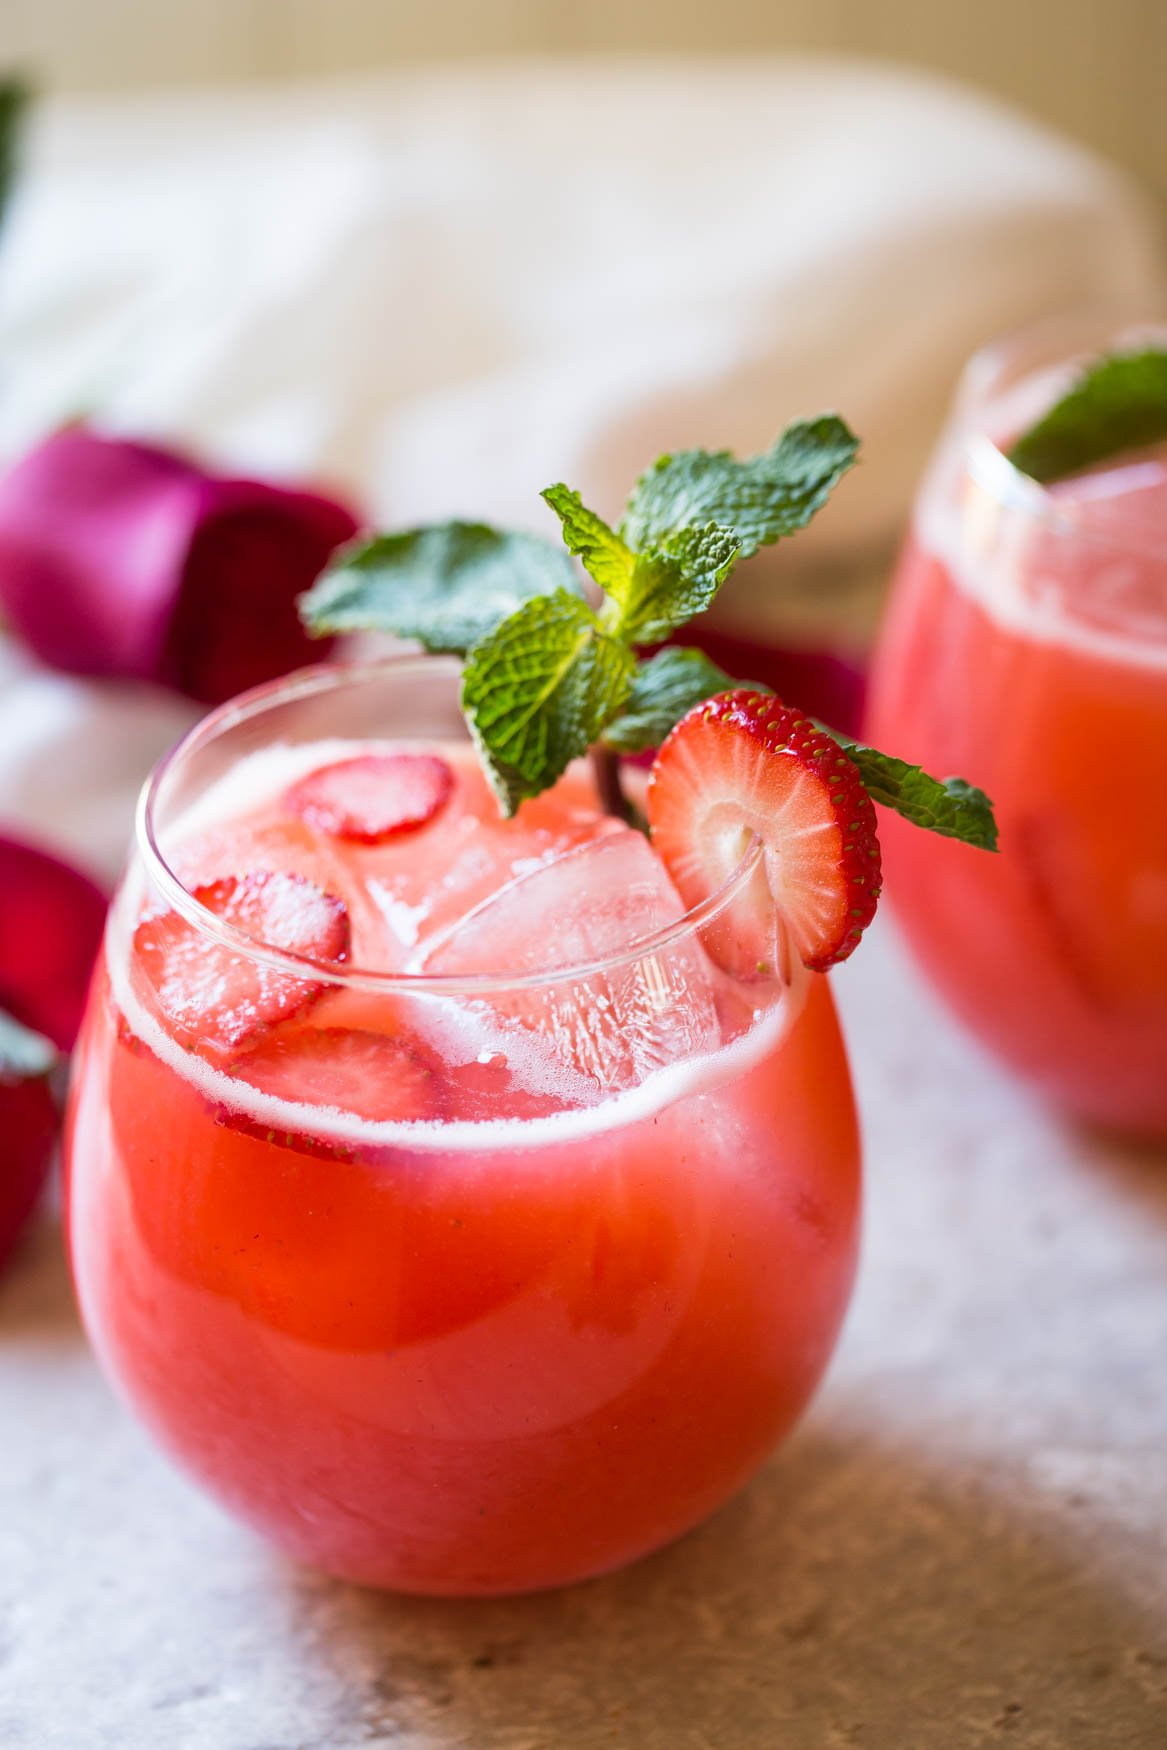 This recipe for homemade fresh strawberry lemonade is super easy to prepare in a few minutes. Perfect refreshing and cooling drink recipe to enjoy the warm days of spring and summer. | #watchwhatuwat #lemonade #summerdrink